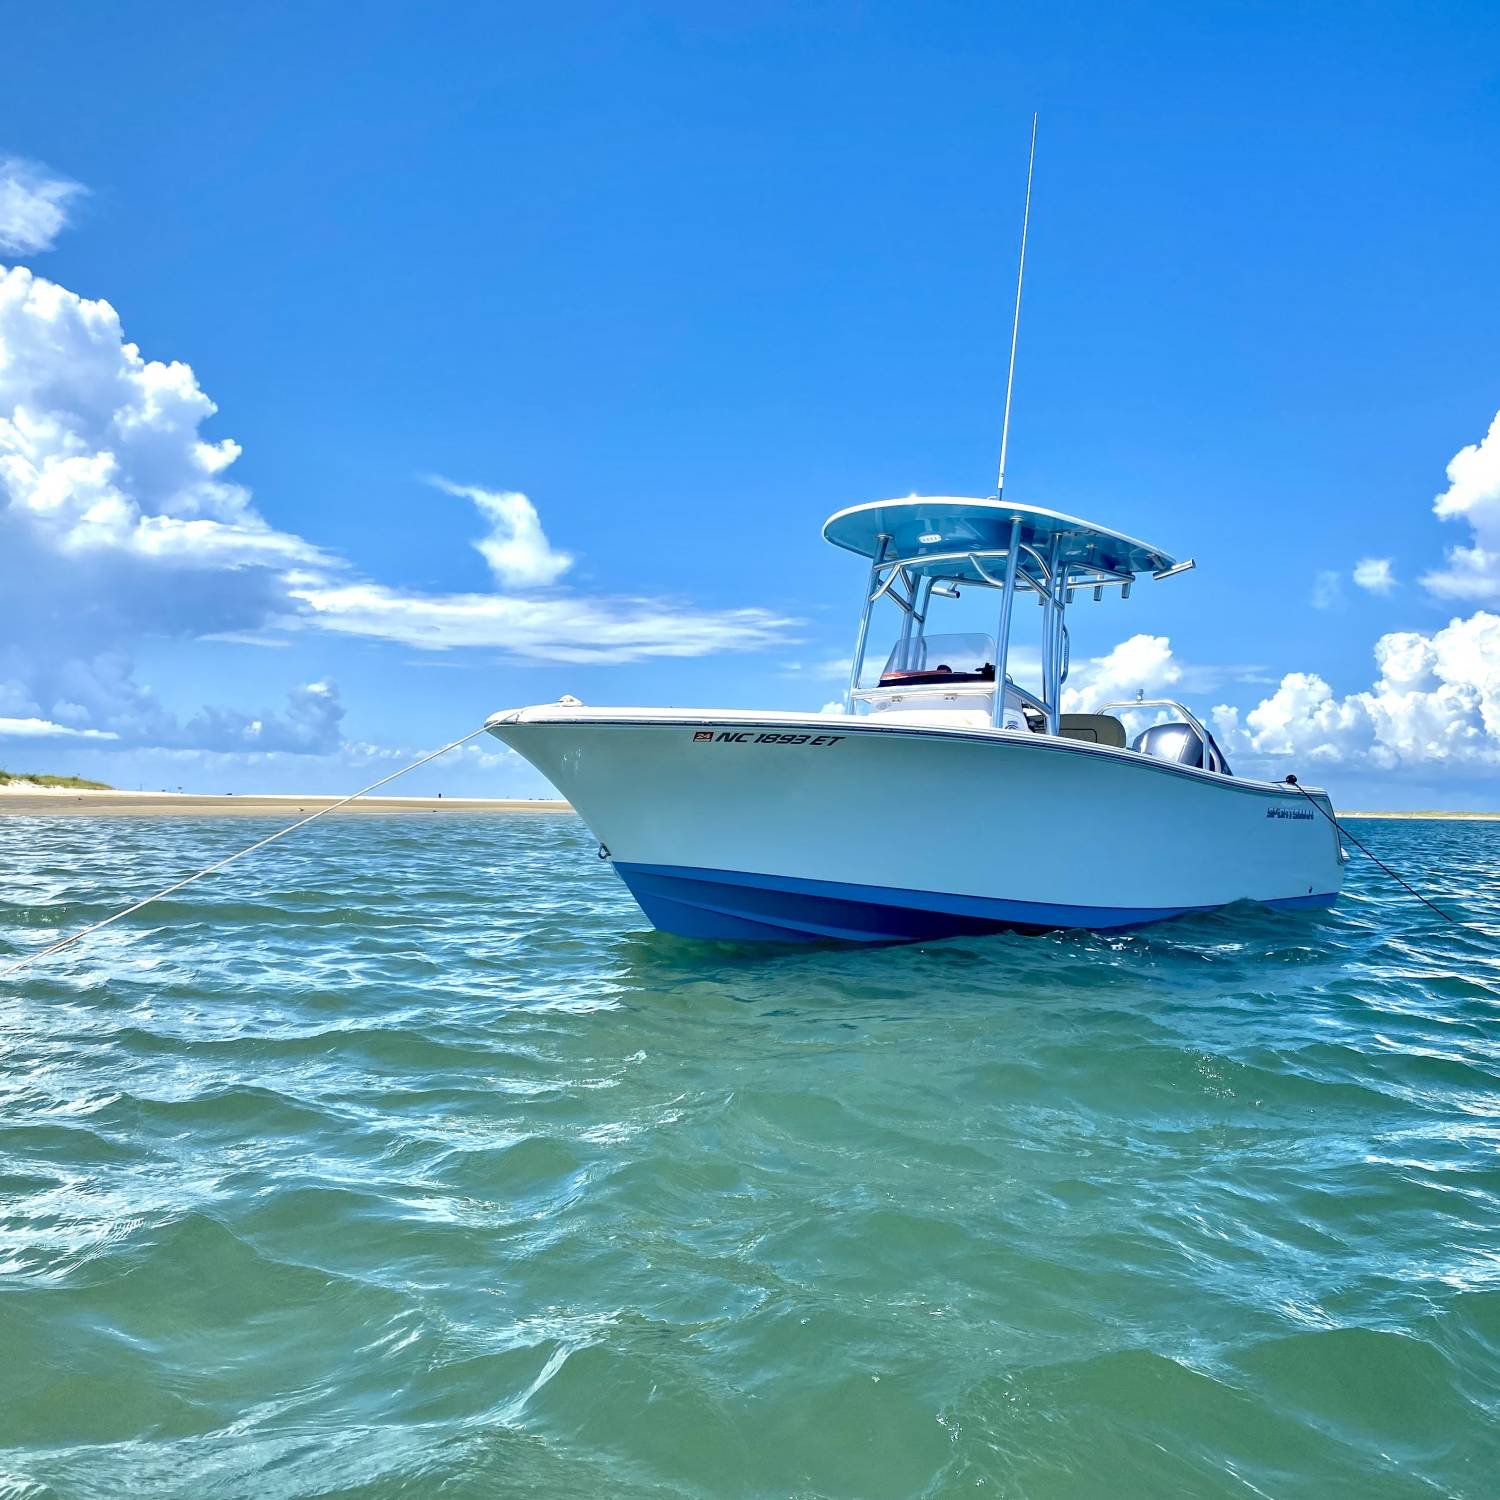 Perfect boat for the perfect summer day of fishing and floating.